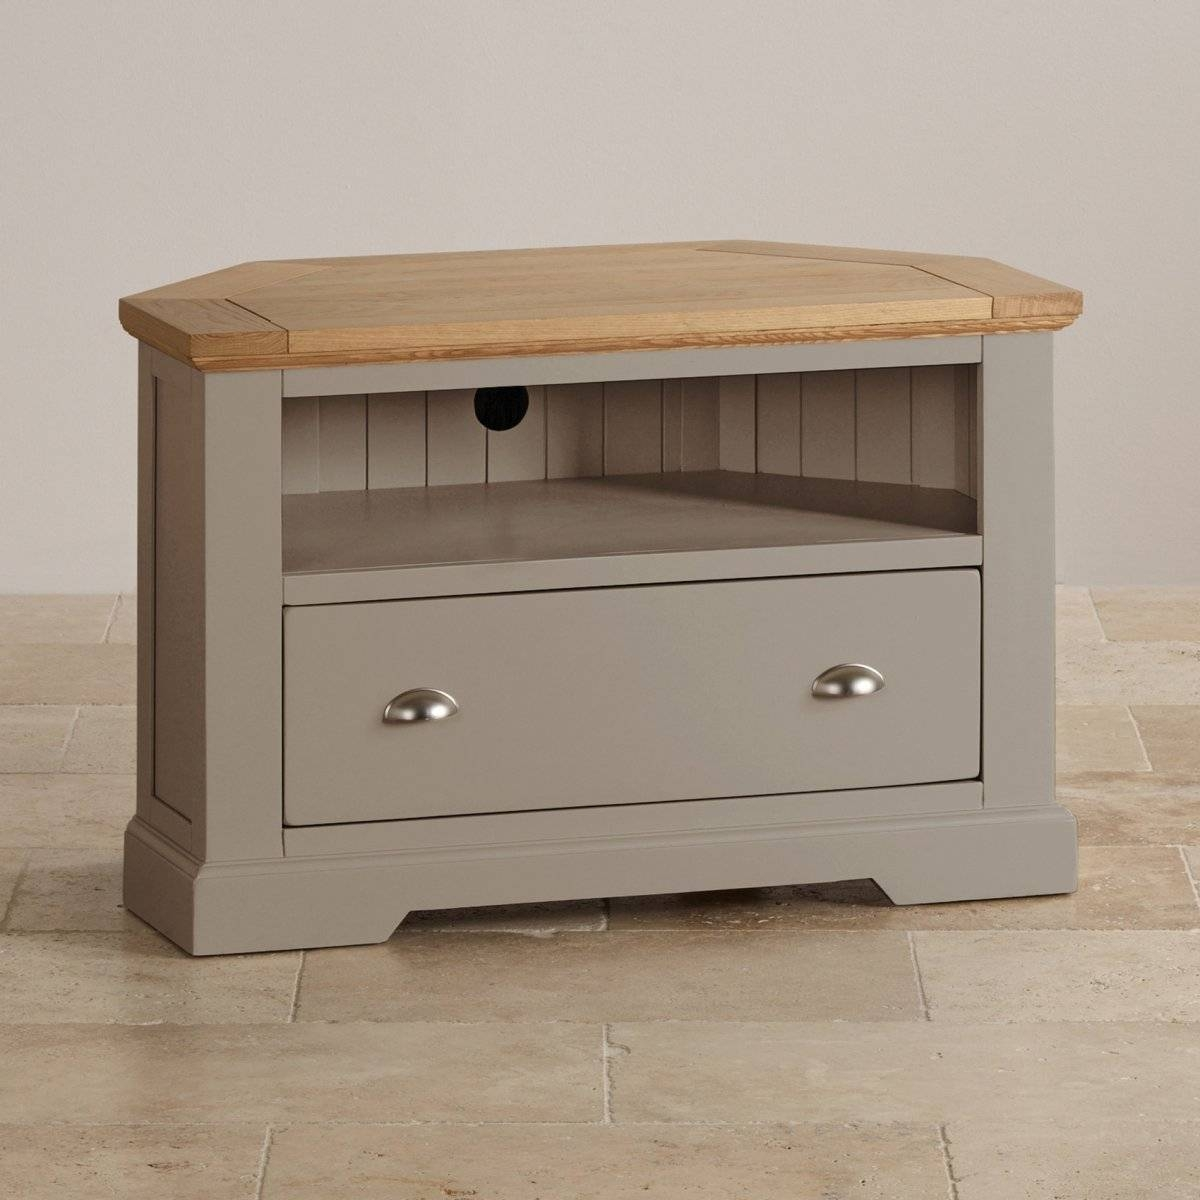 St Ives Corner Tv Unit In Grey Painted Acacia With Oak Top pertaining to Silver Corner Tv Stands (Image 6 of 15)